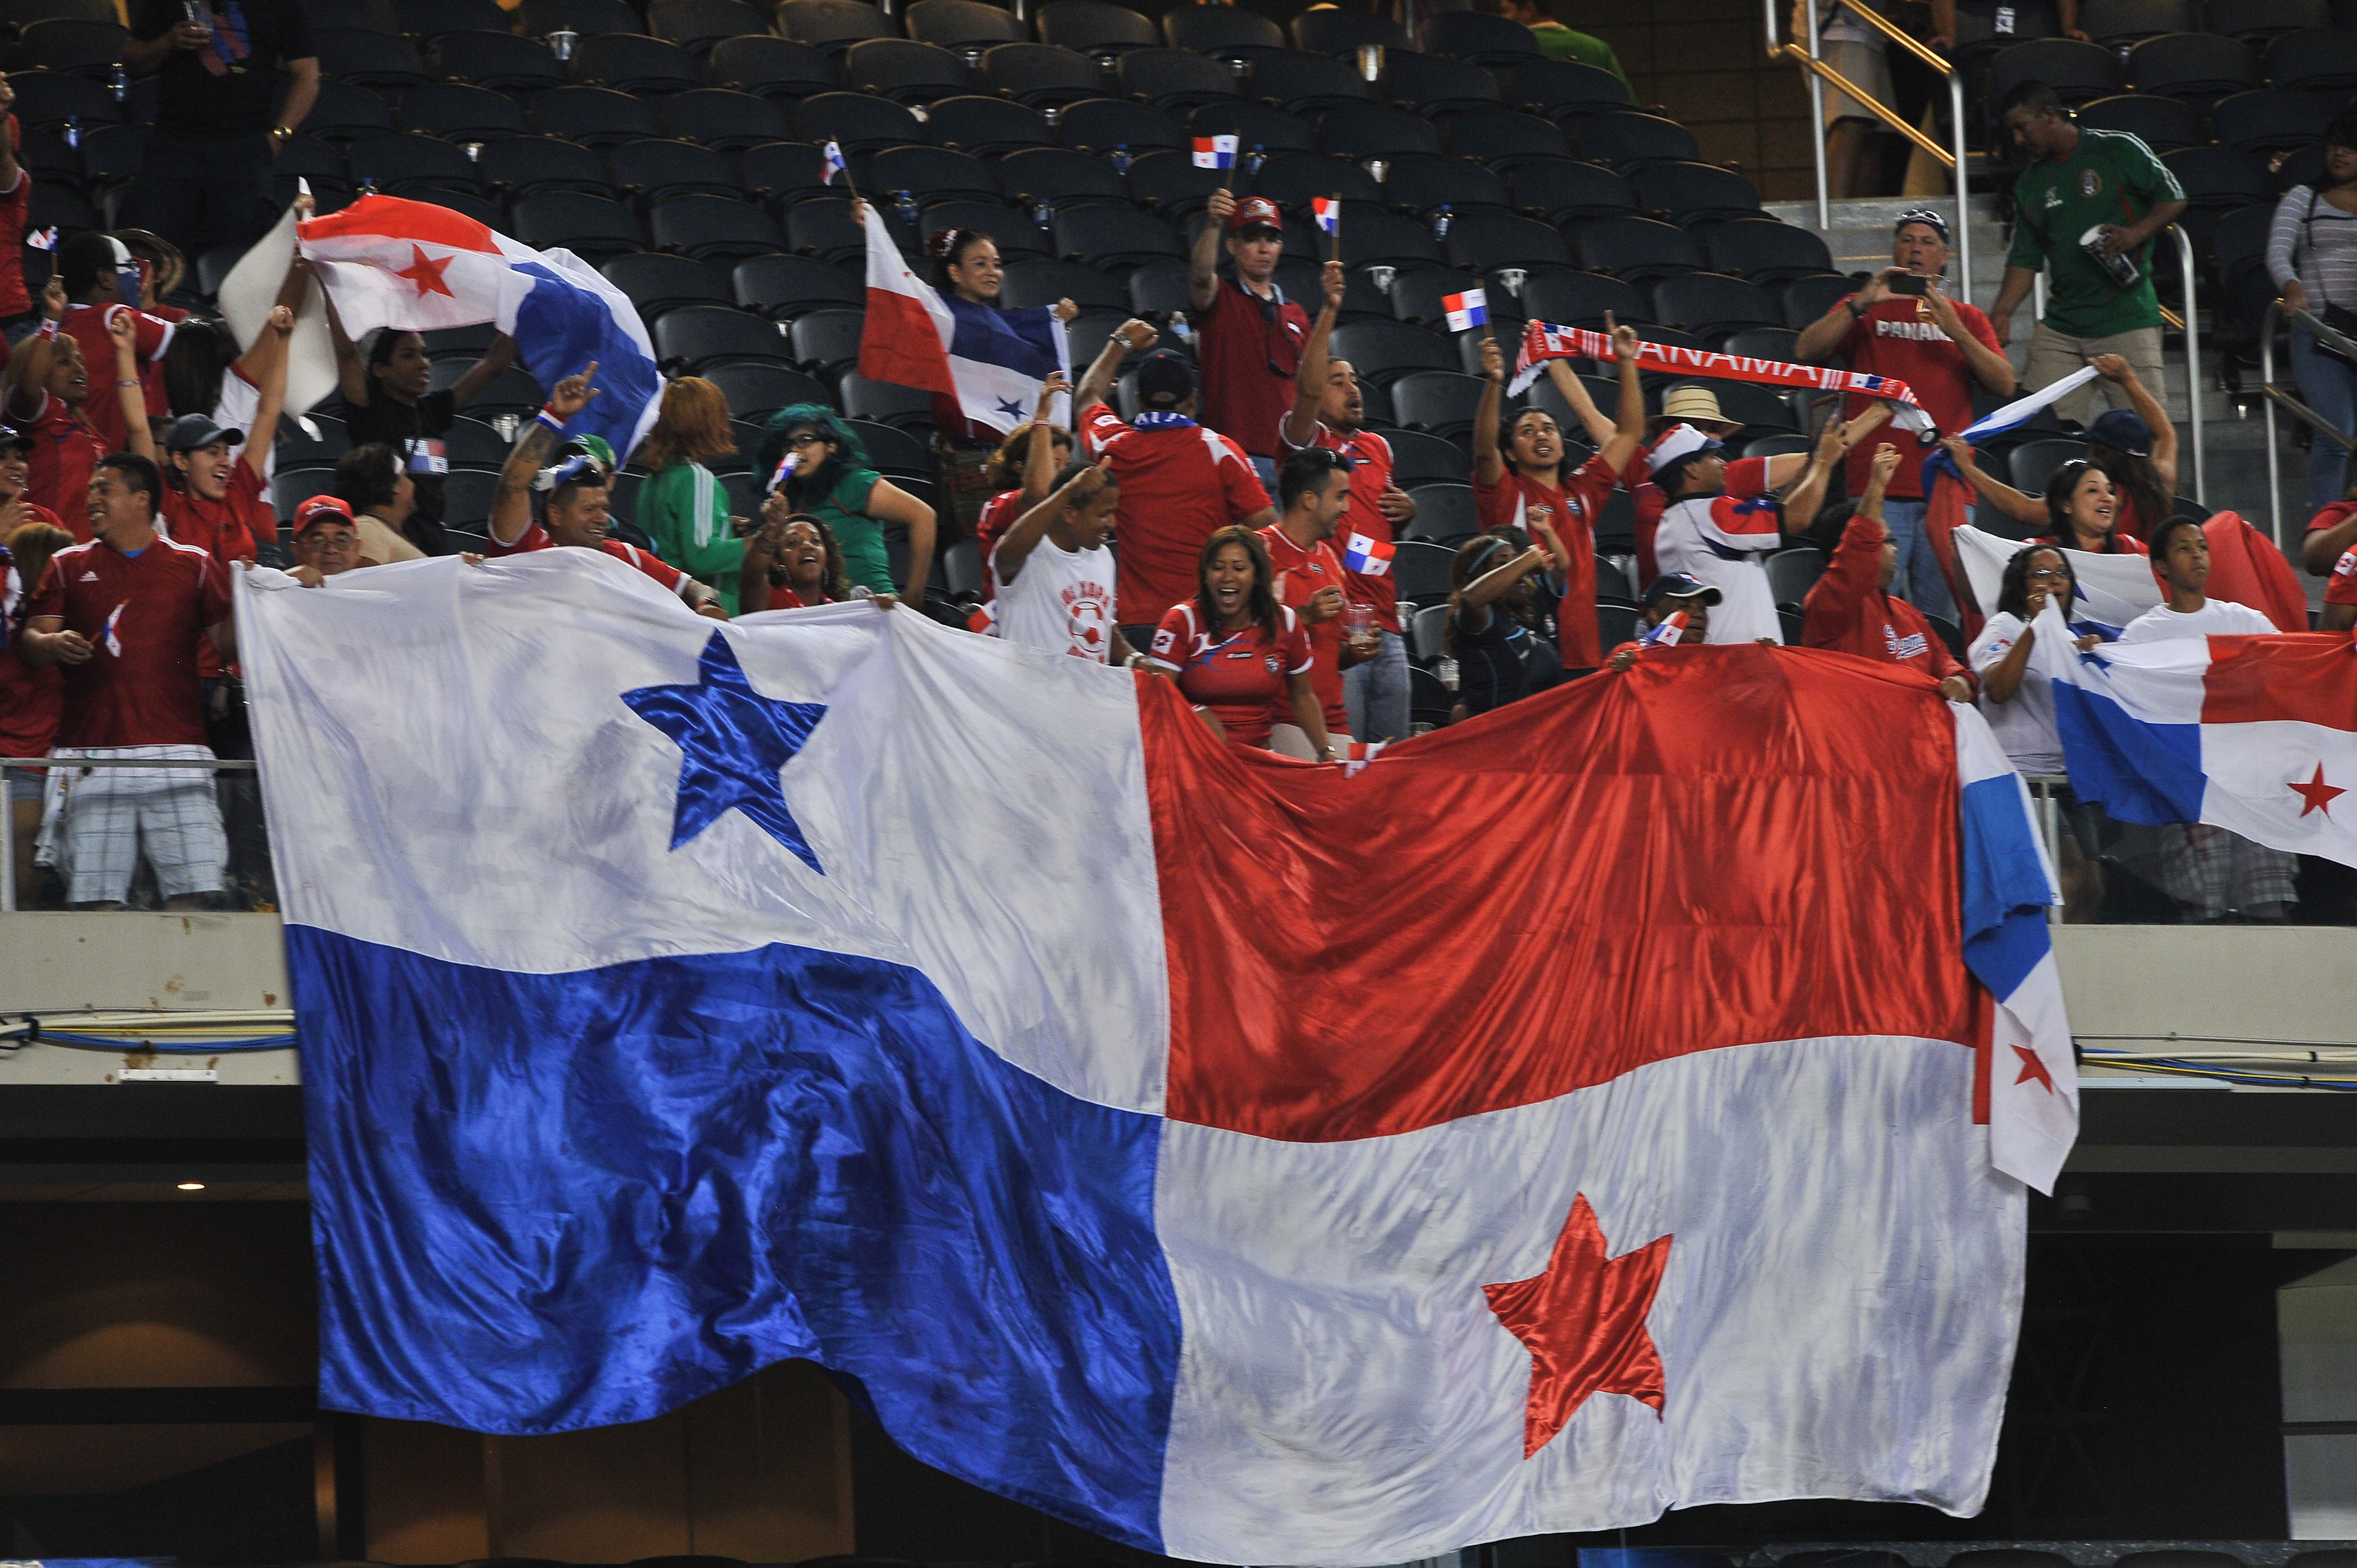 Panama fans celebrate after their team defeated Mexico 2-1 in the Gold Cup semifinals at Cowboys Stadium in Arlington, Texas, on July 24, 2013. Panama will face the US in the final.    AFP PHOTO/Nicholas KAMM        (Photo credit should read NICHOLAS KAMM/AFP/Getty Images)